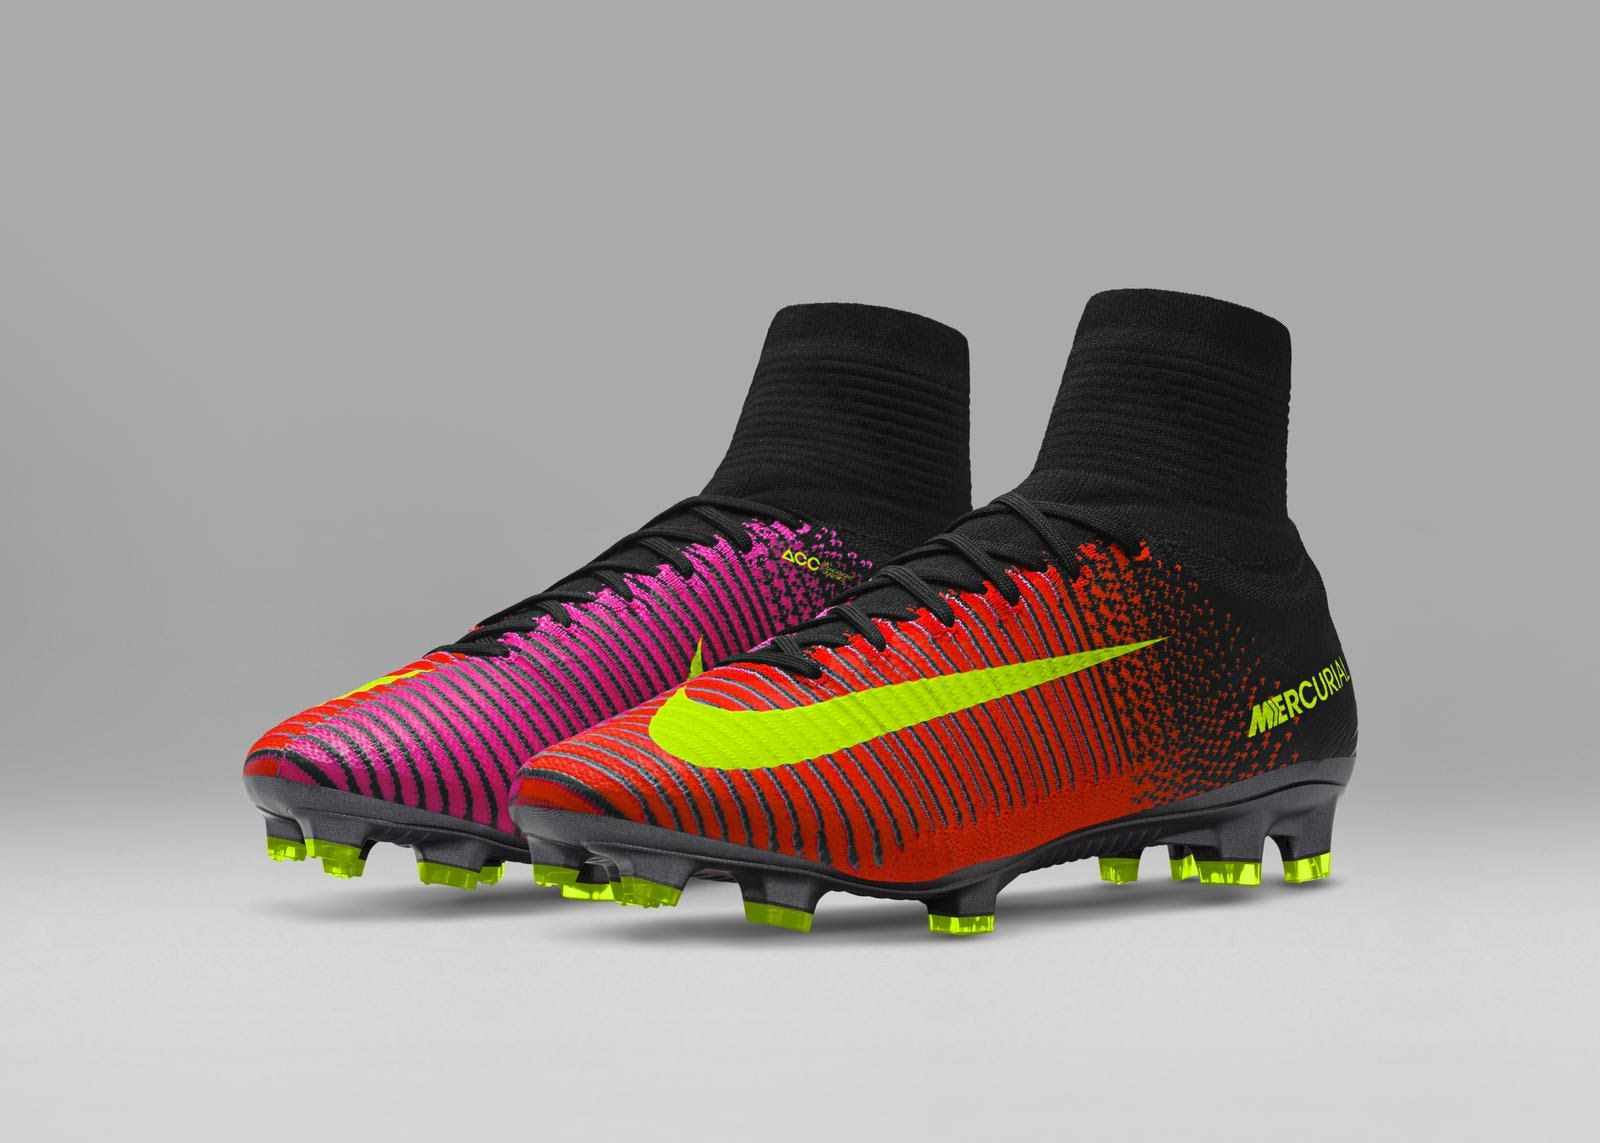 33dbd09fb New Football Boots Nike Spark Brilliance Pack for EURO 2016 | 2014 ...